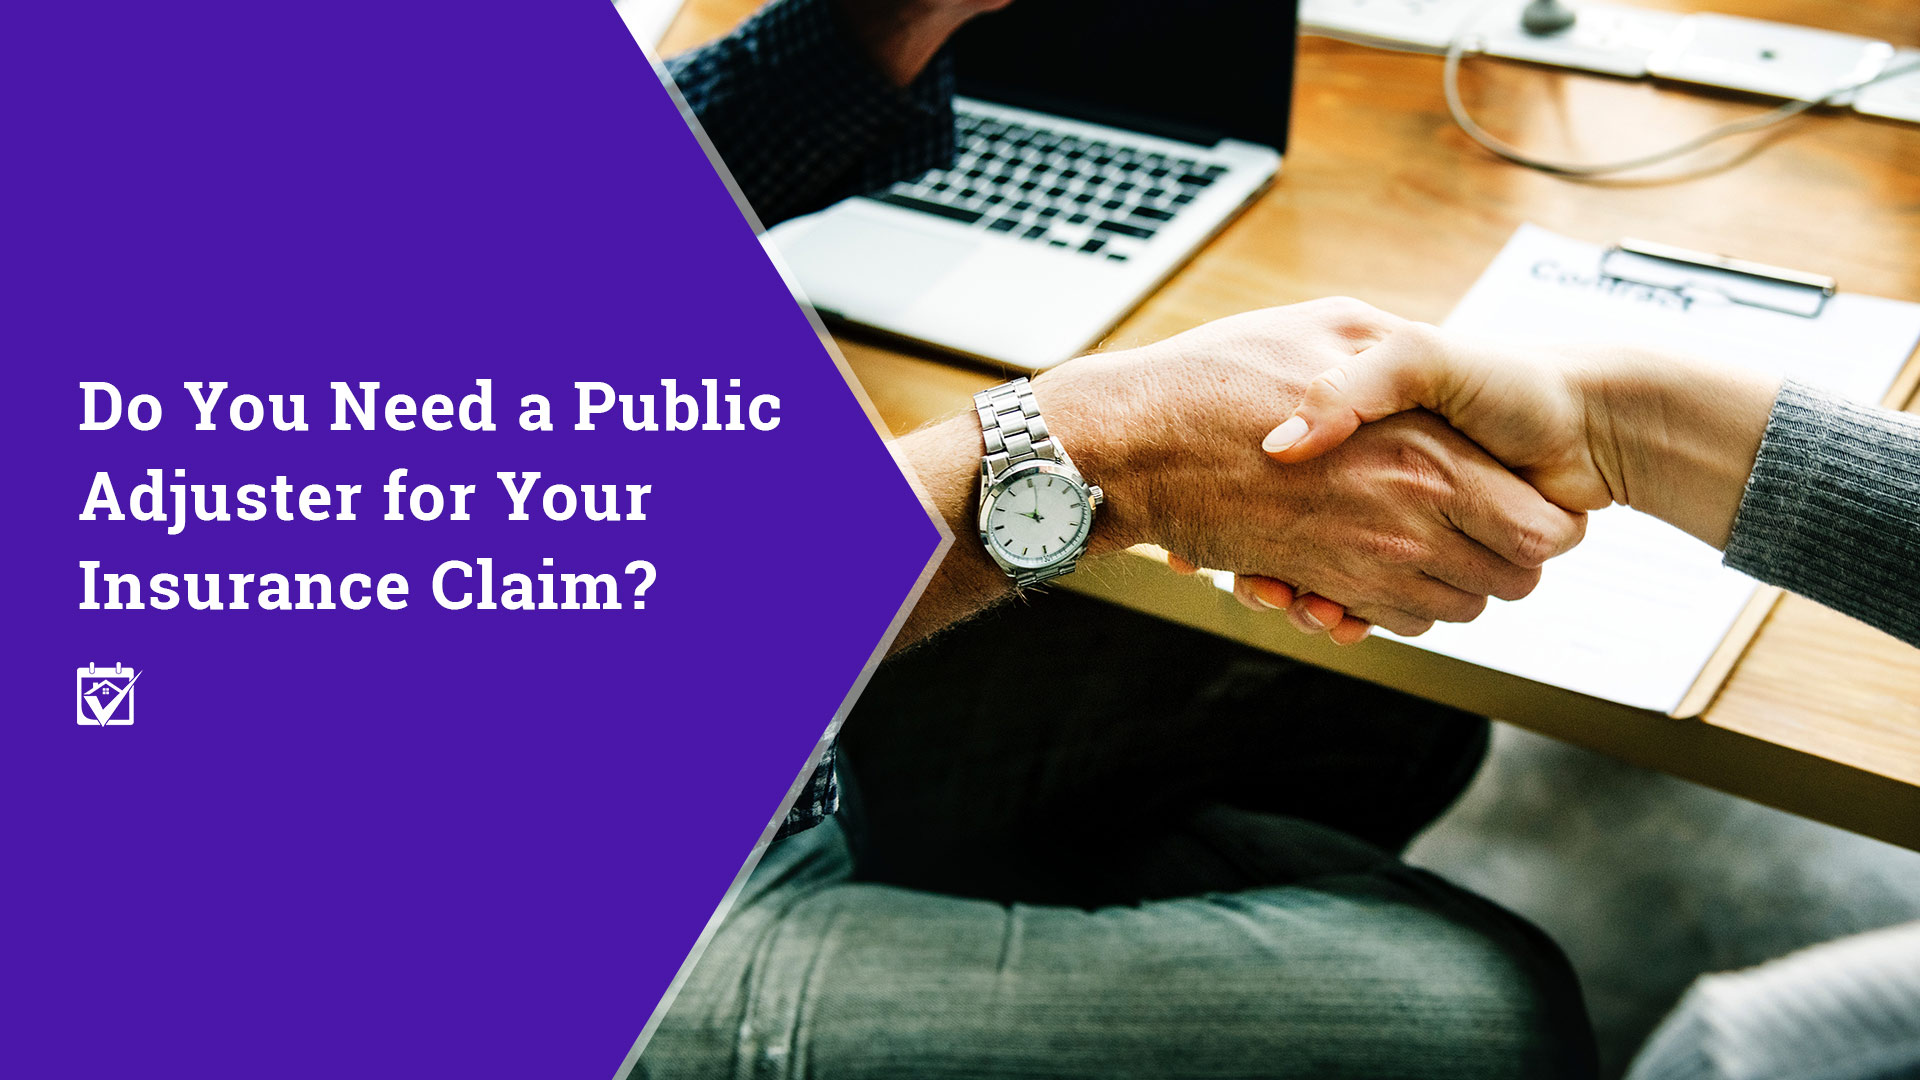 Do You Need a Public Adjuster for Your Insurance Claim? | Blog | HomeKeepr